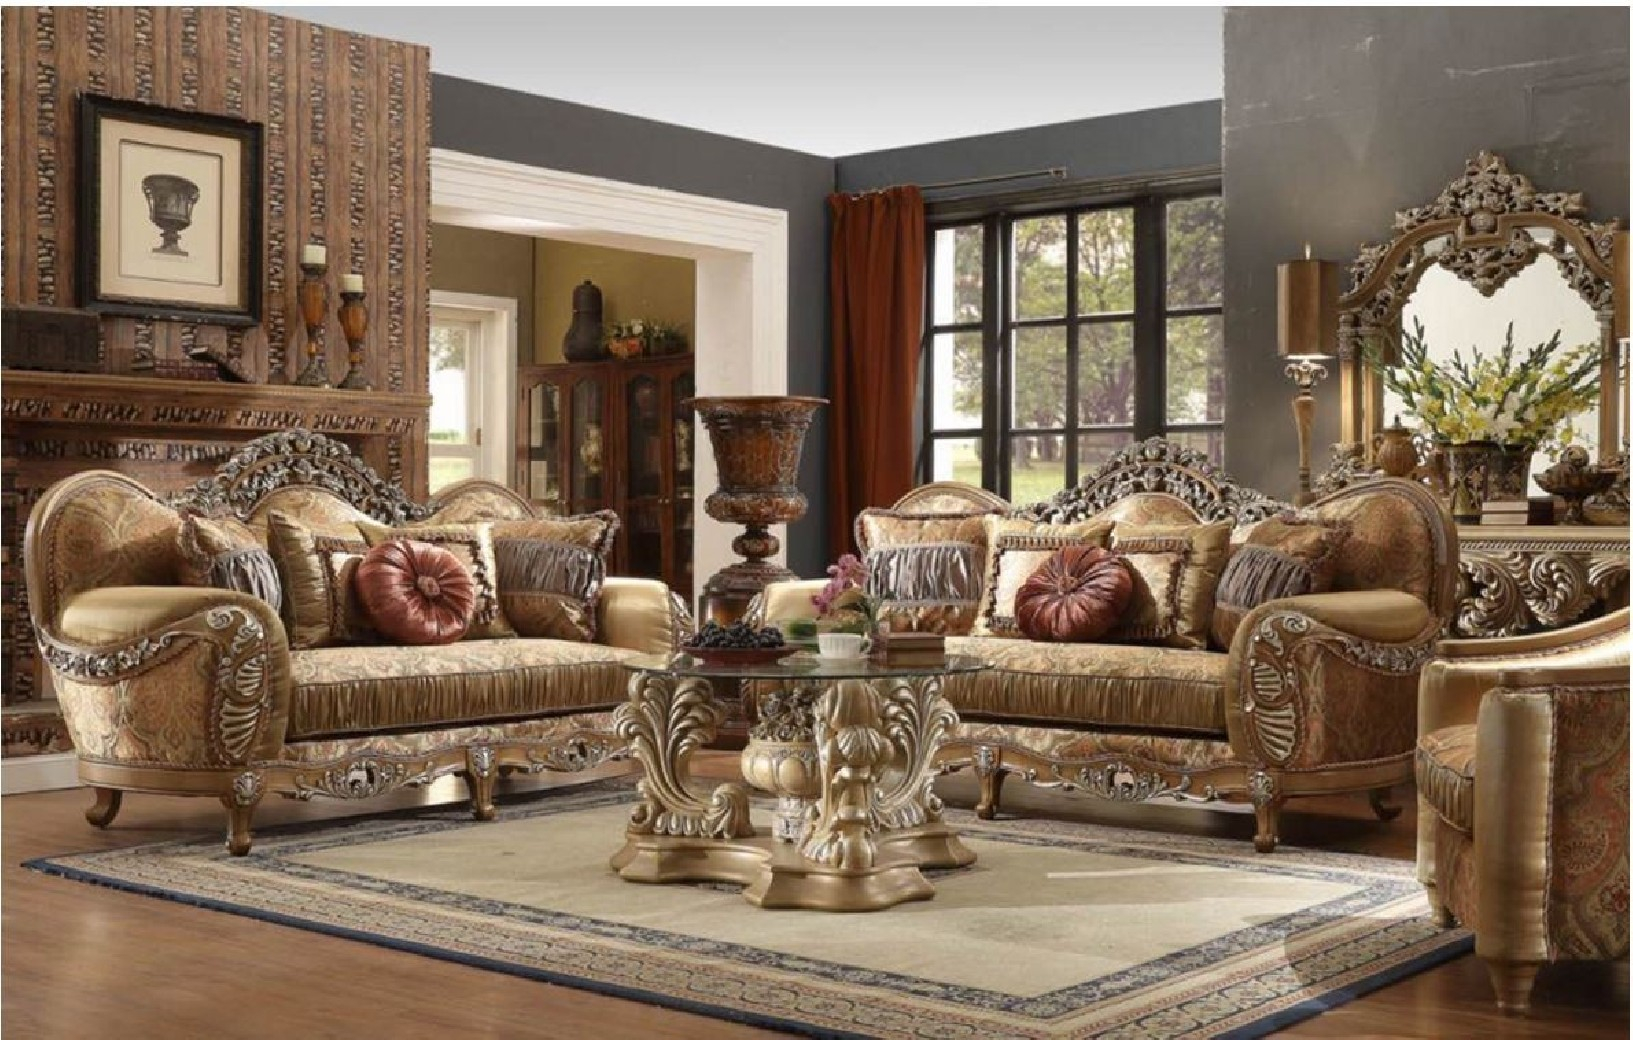 Hd 622 Homey Design Upholstery Living Room Set Victorian European Classic Design Sofa Set in Deals On Living Room Sets